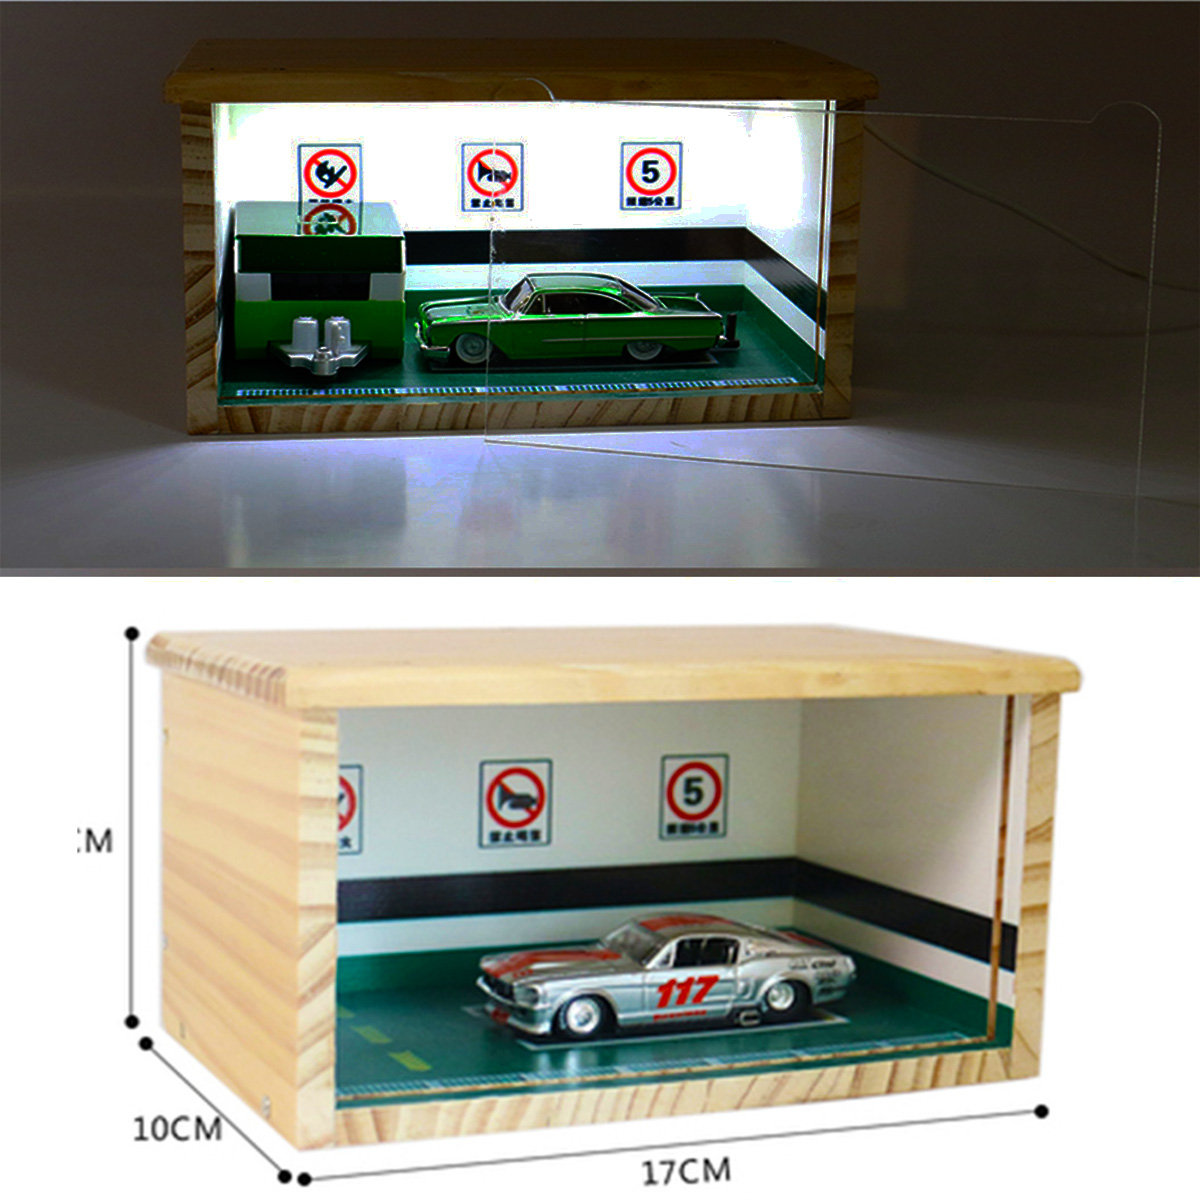 1/64 Scale Car Model Display Cover Box Showcase Underground Garage Wood Parking Lot Storage Dustproof Vehicle Toy Gift Set Show